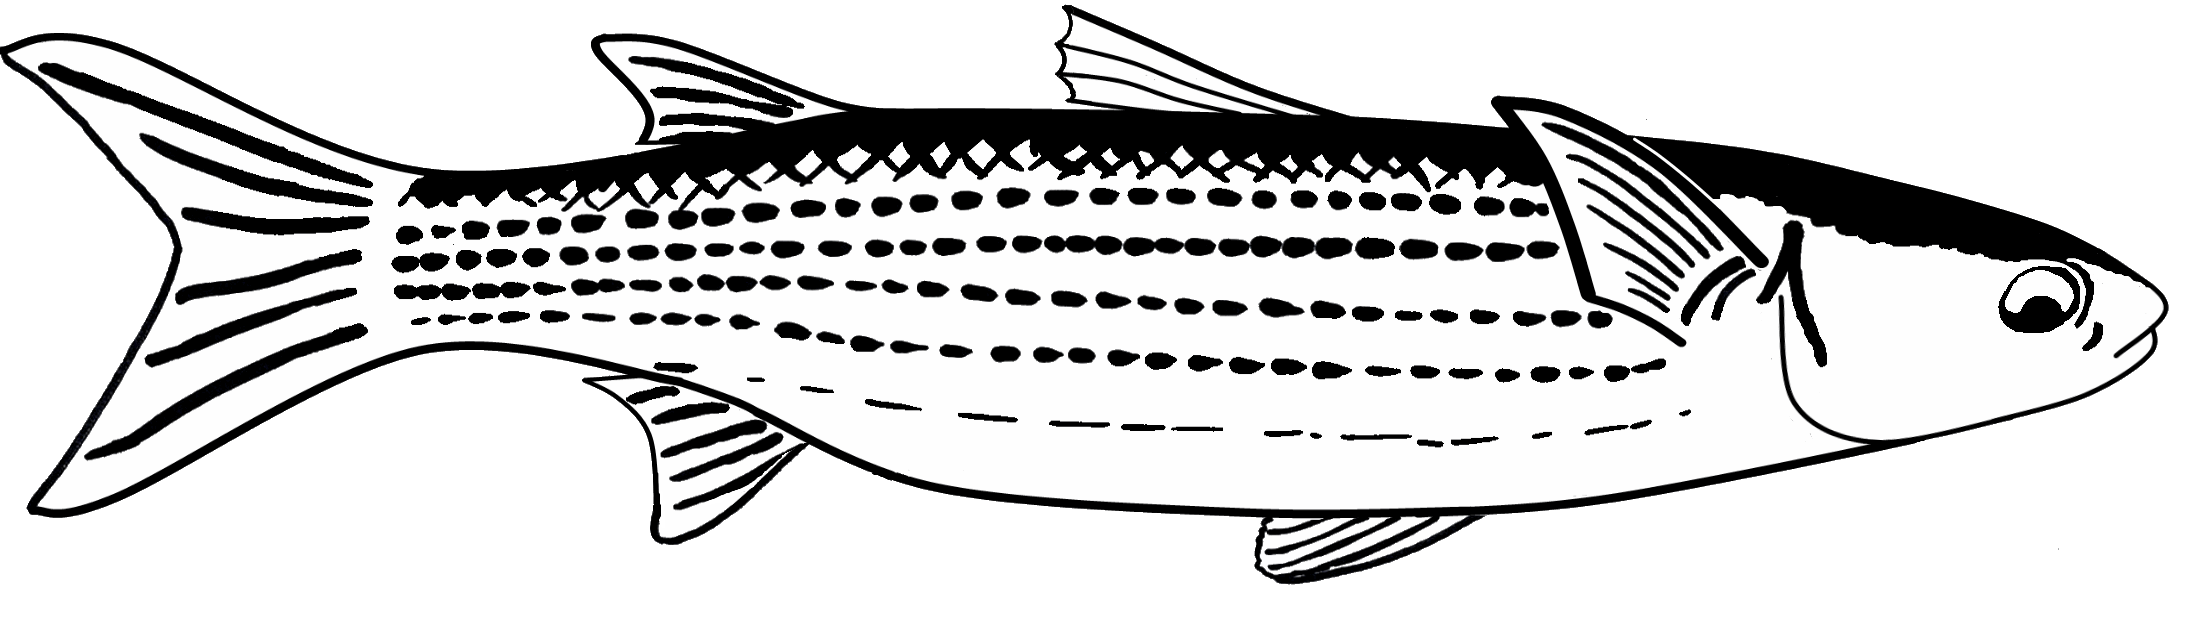 Mullet fish clipart image black and white 28+ Collection of Mullet Drawing   High quality, free cliparts ... image black and white